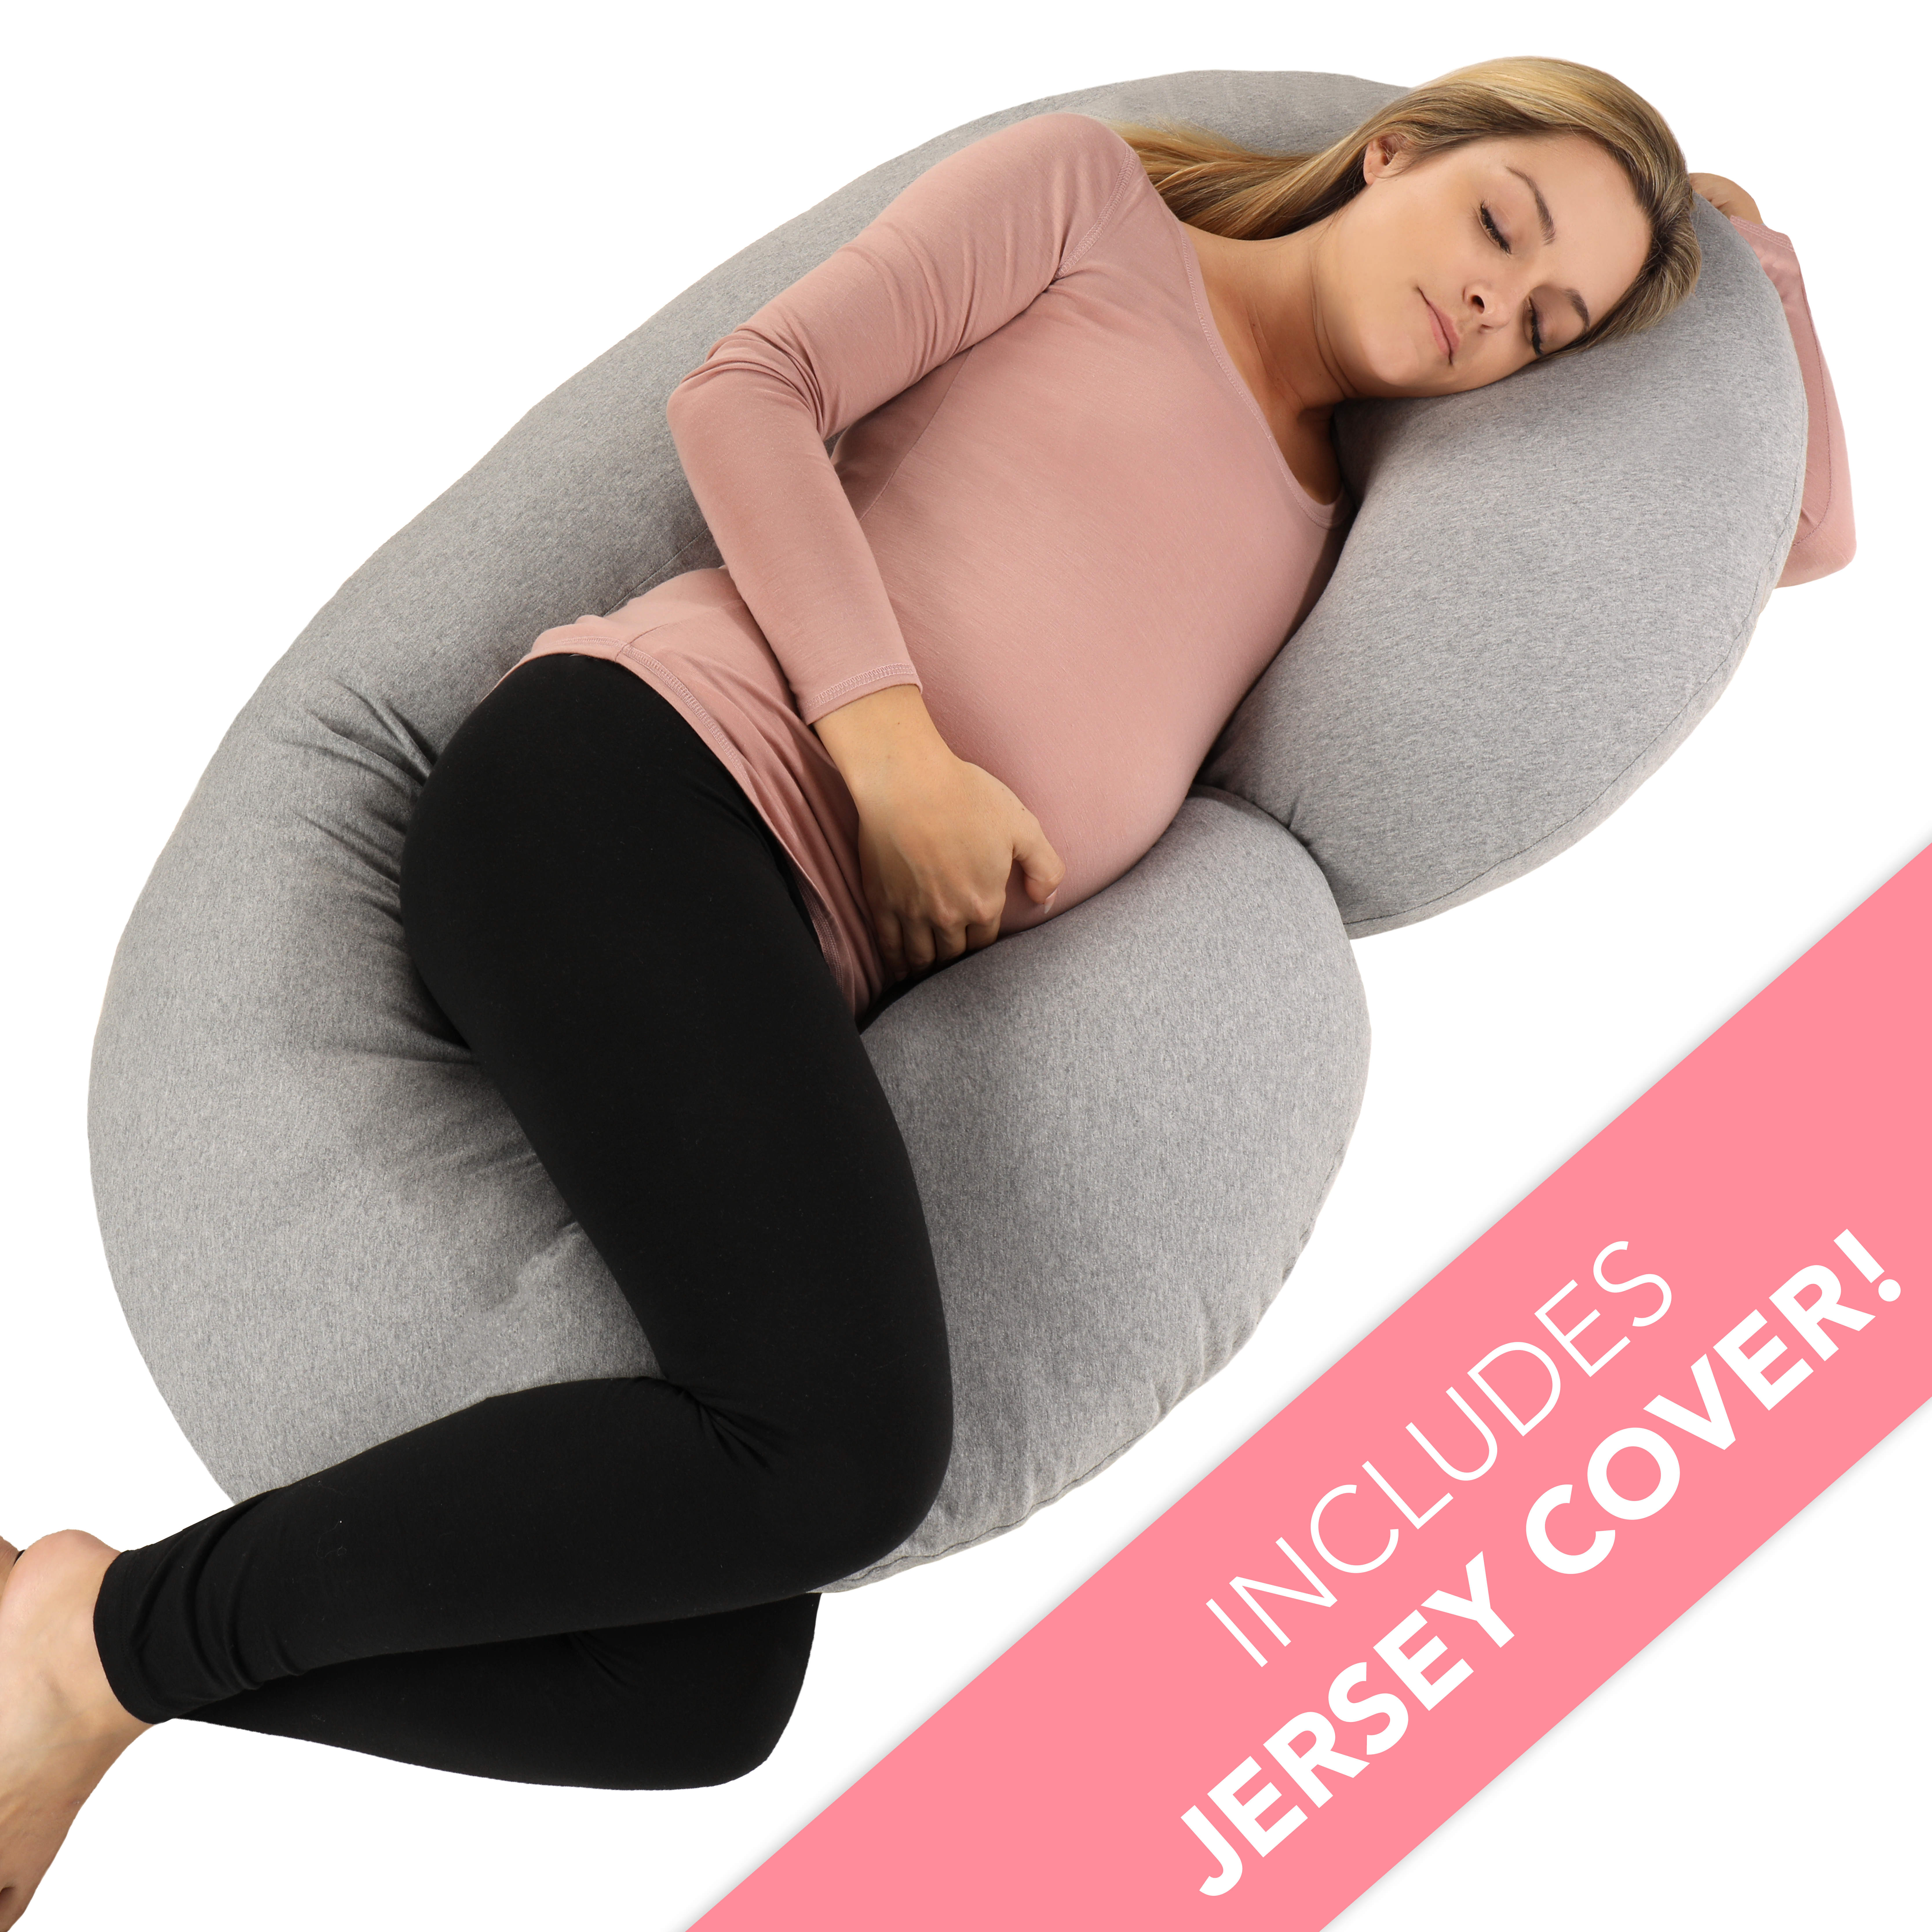 PharMeDoc Pregnancy Pillow with Soft Jersey Cover - C Shaped Body Pillow for Pregnant Women